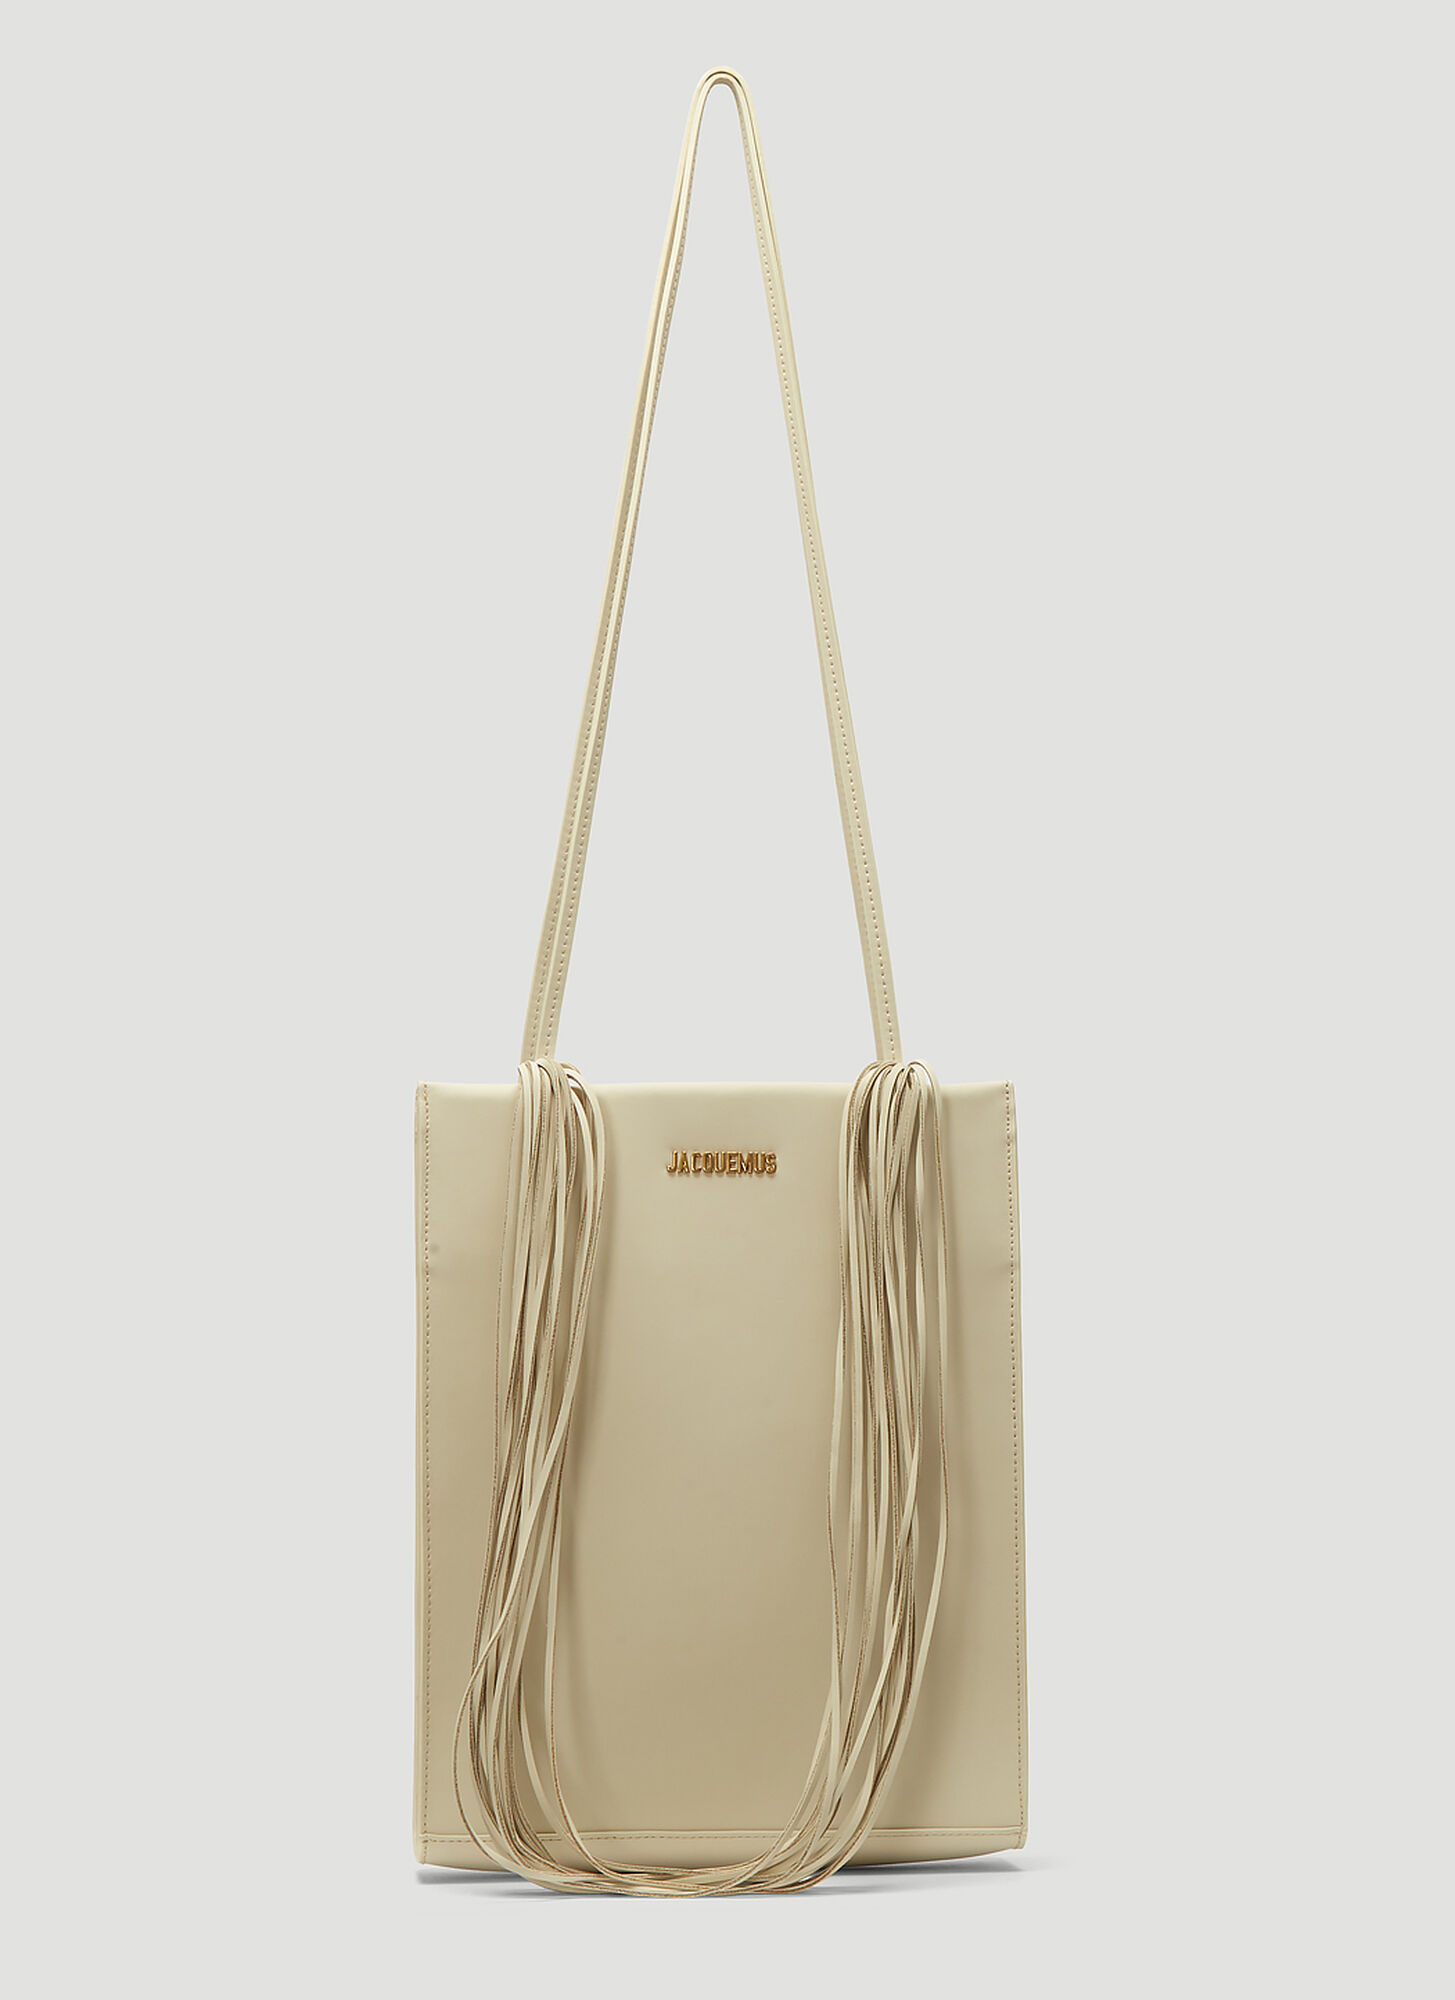 Jacquemus Le A4 Tote Bag in White